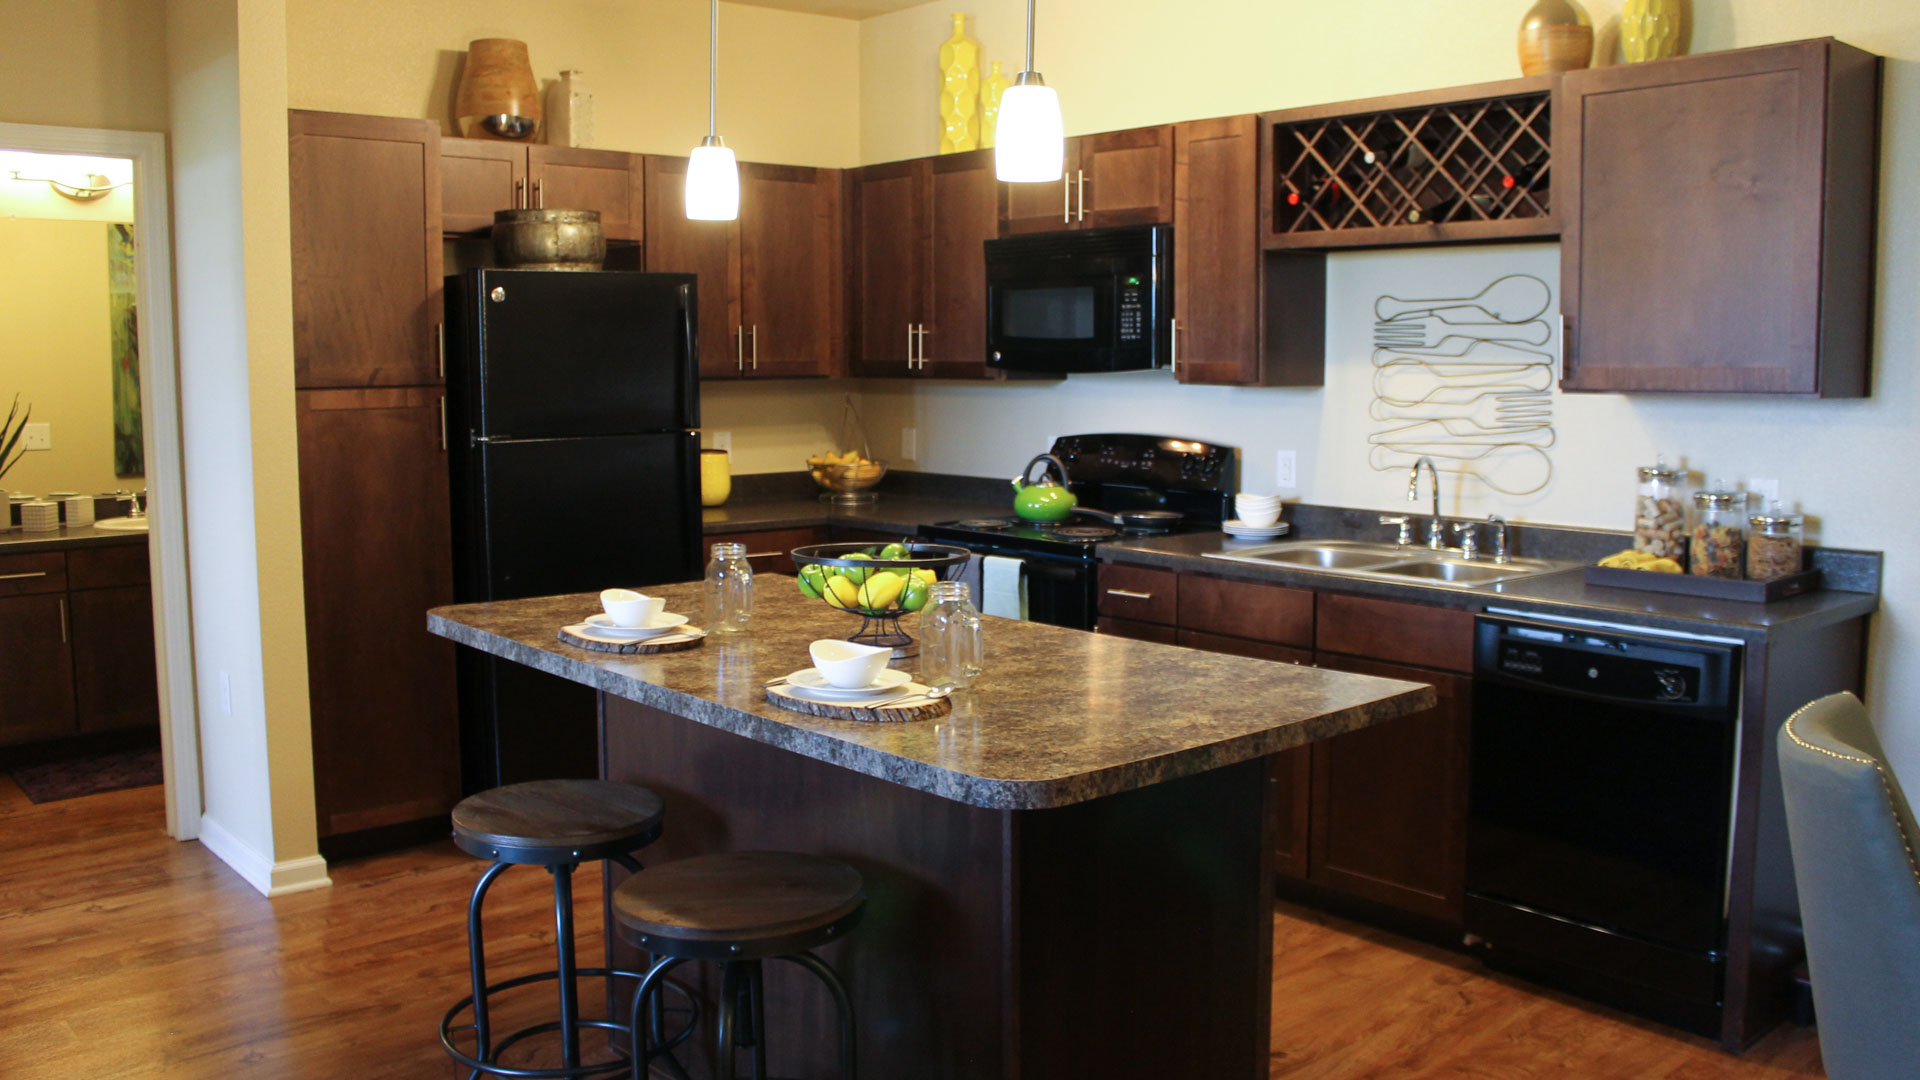 Kitchen with black appliances at Springs at Creekside in New Braunfels